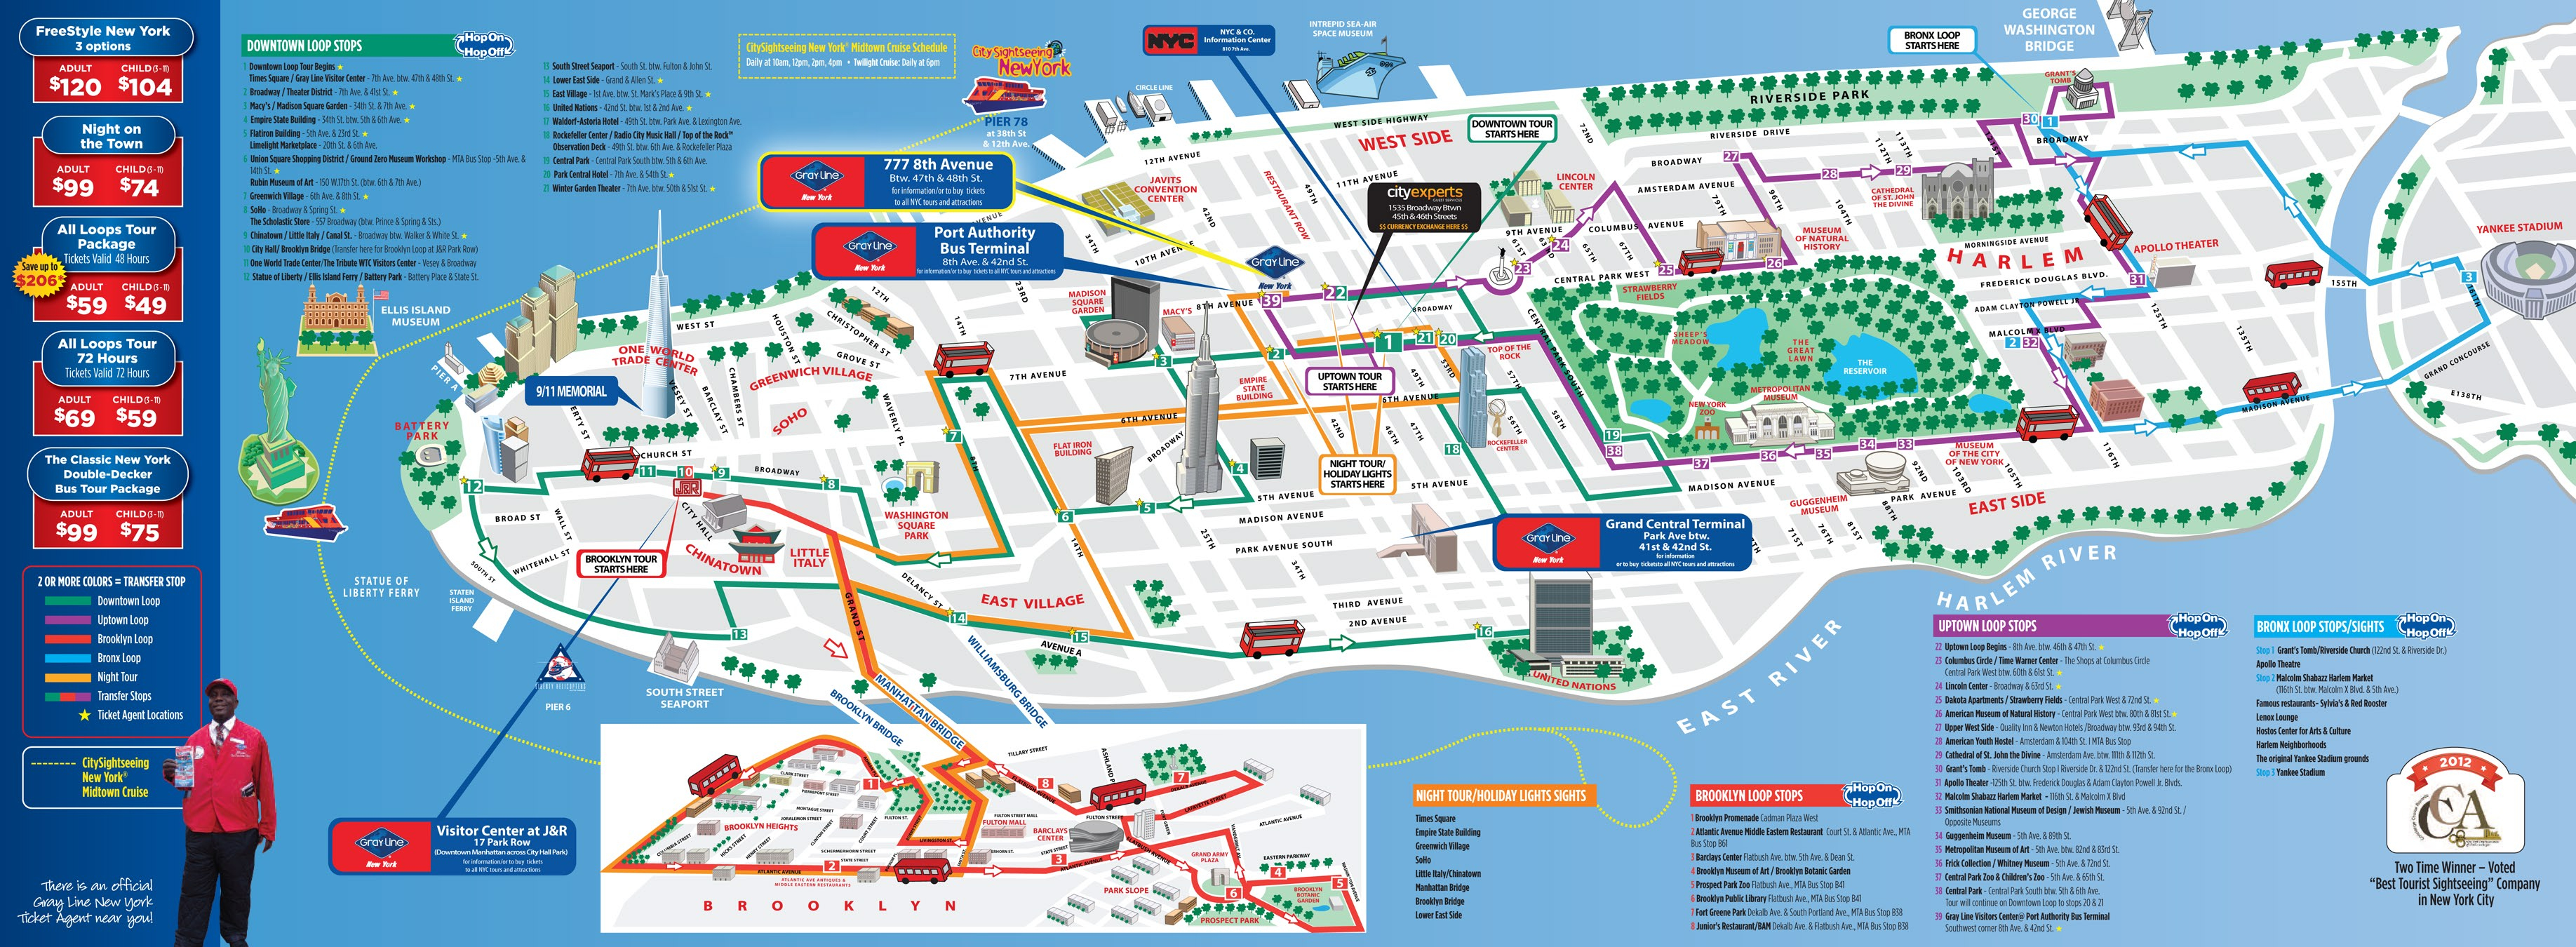 New York Attractions Map Pdf - Free Printable Tourist Map New York - Nyc Walking Map Printable